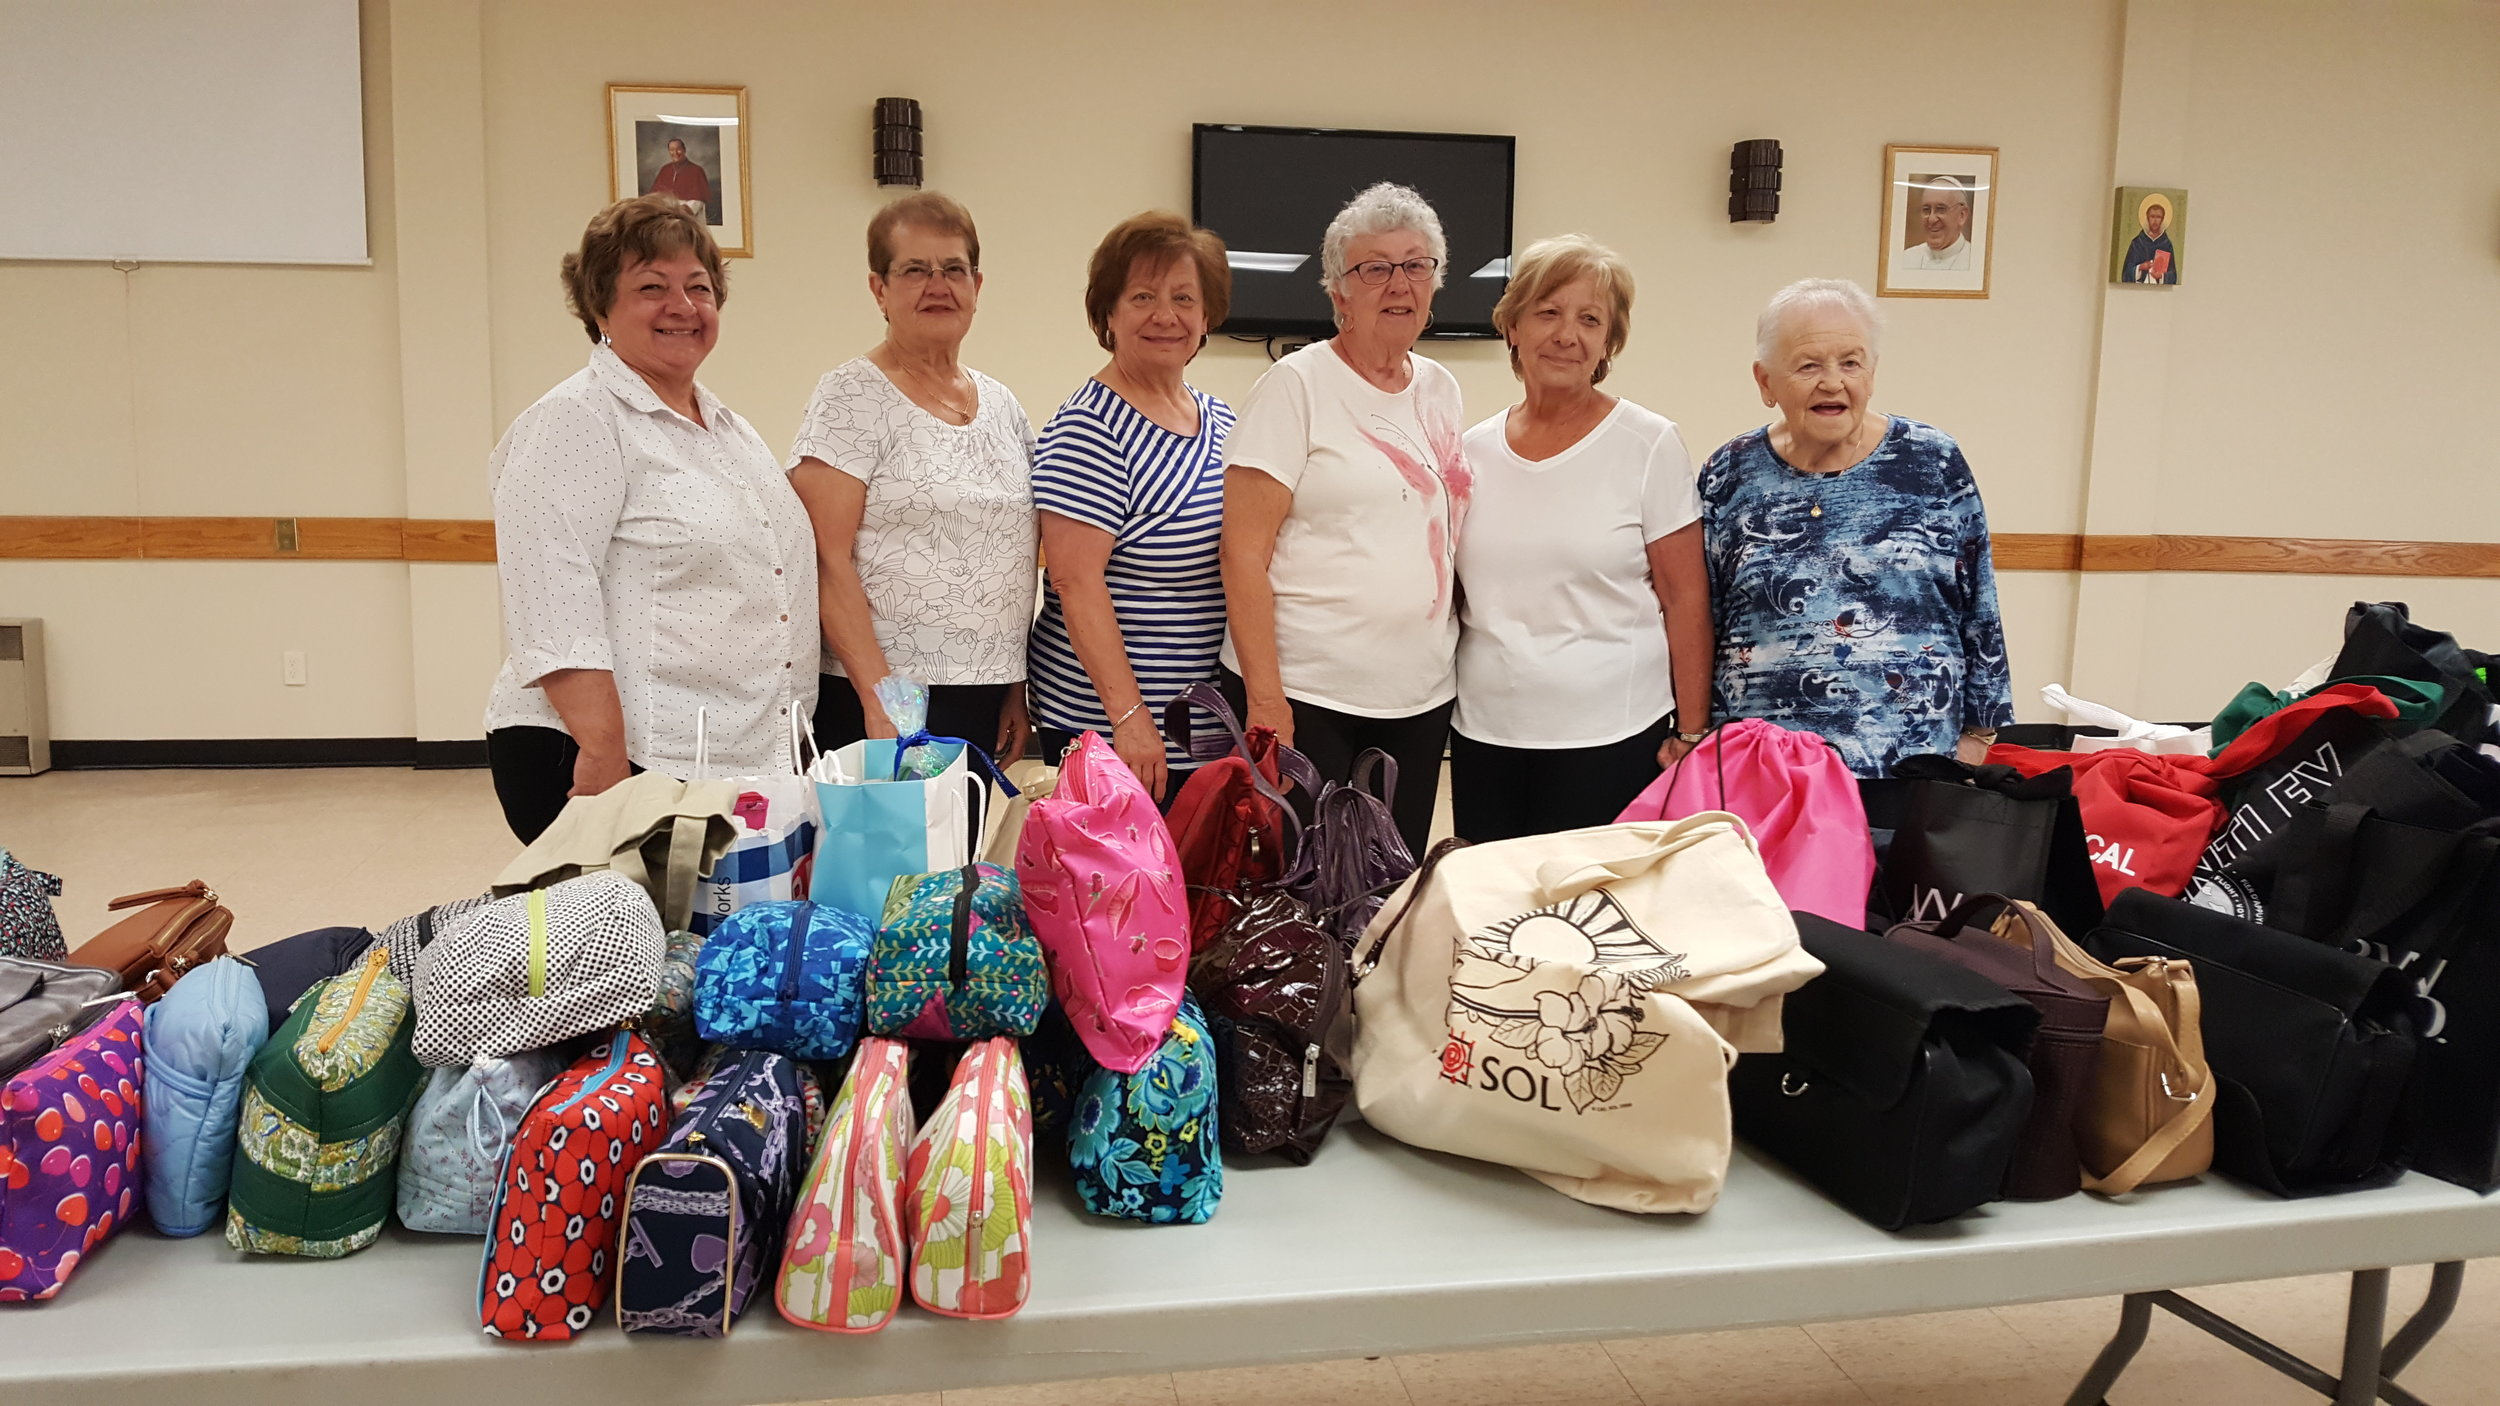 C.W.L. Hug Project 2019  The C.W.L. Executive would like to thank everyone who donated so generously to our HUG PROJECT.. We were able to fill 87 purses and varied sized bags with personal care items for women and children who are victims of domestic abuse and homelessness. We were also able to donate 4 very large bags with clothing and toiletries.  In addition, we had monetary donations and gift cards. The total of these will be divided between Faye Peterson Transition House for Women, and Beendigen Inc.   Thank you everyone again for your generosity!  L.Burella